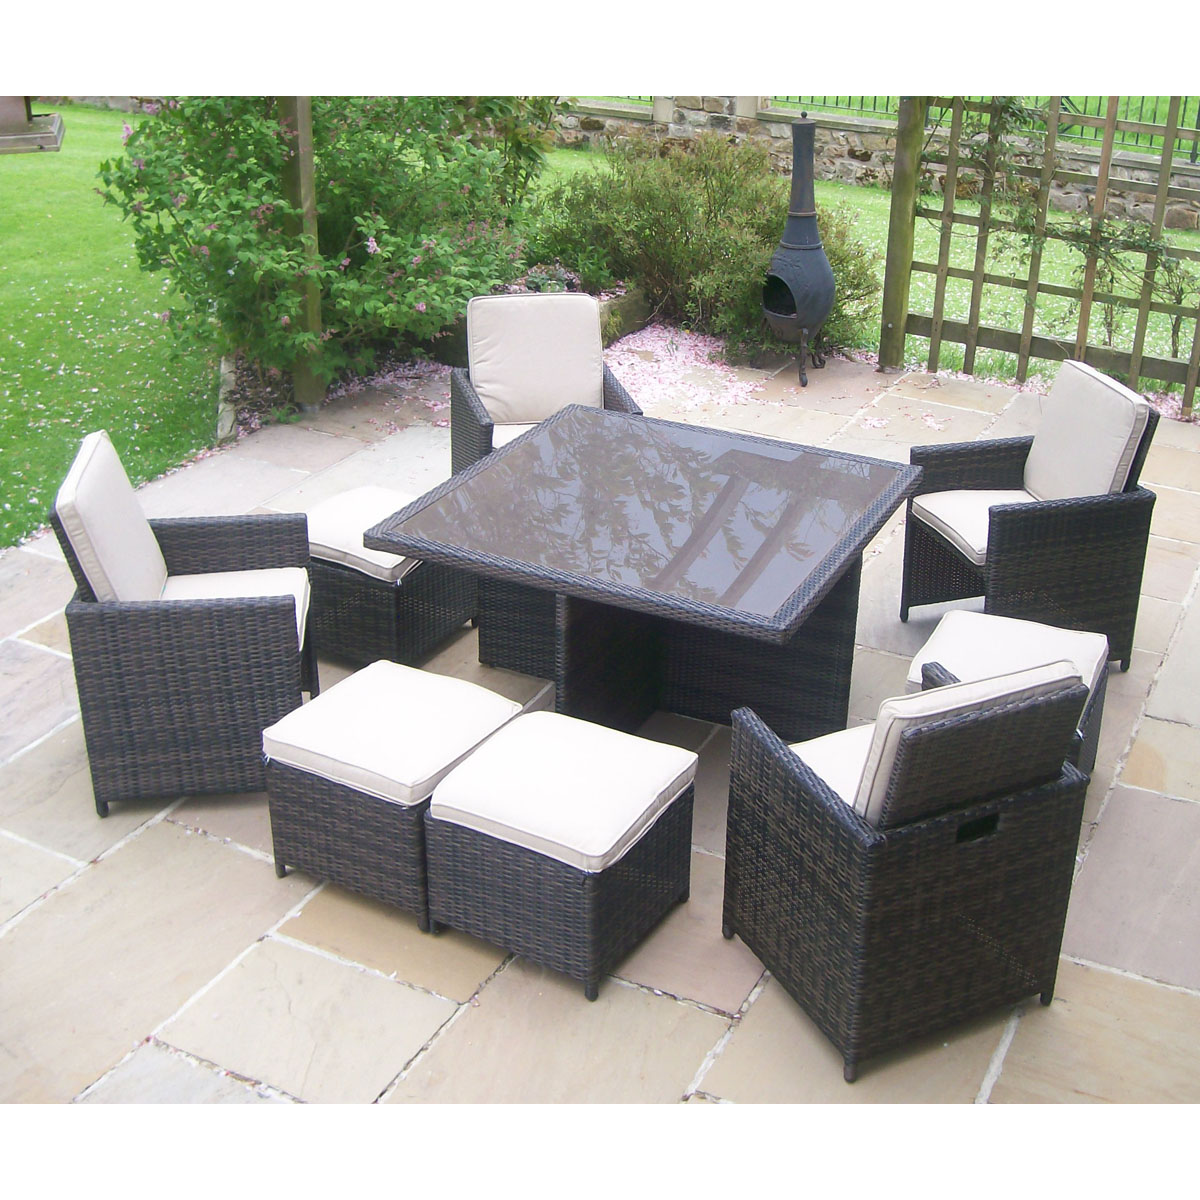 Rattan wicker garden furniture table 4 chair patio set ebay for Outdoor furniture wicker